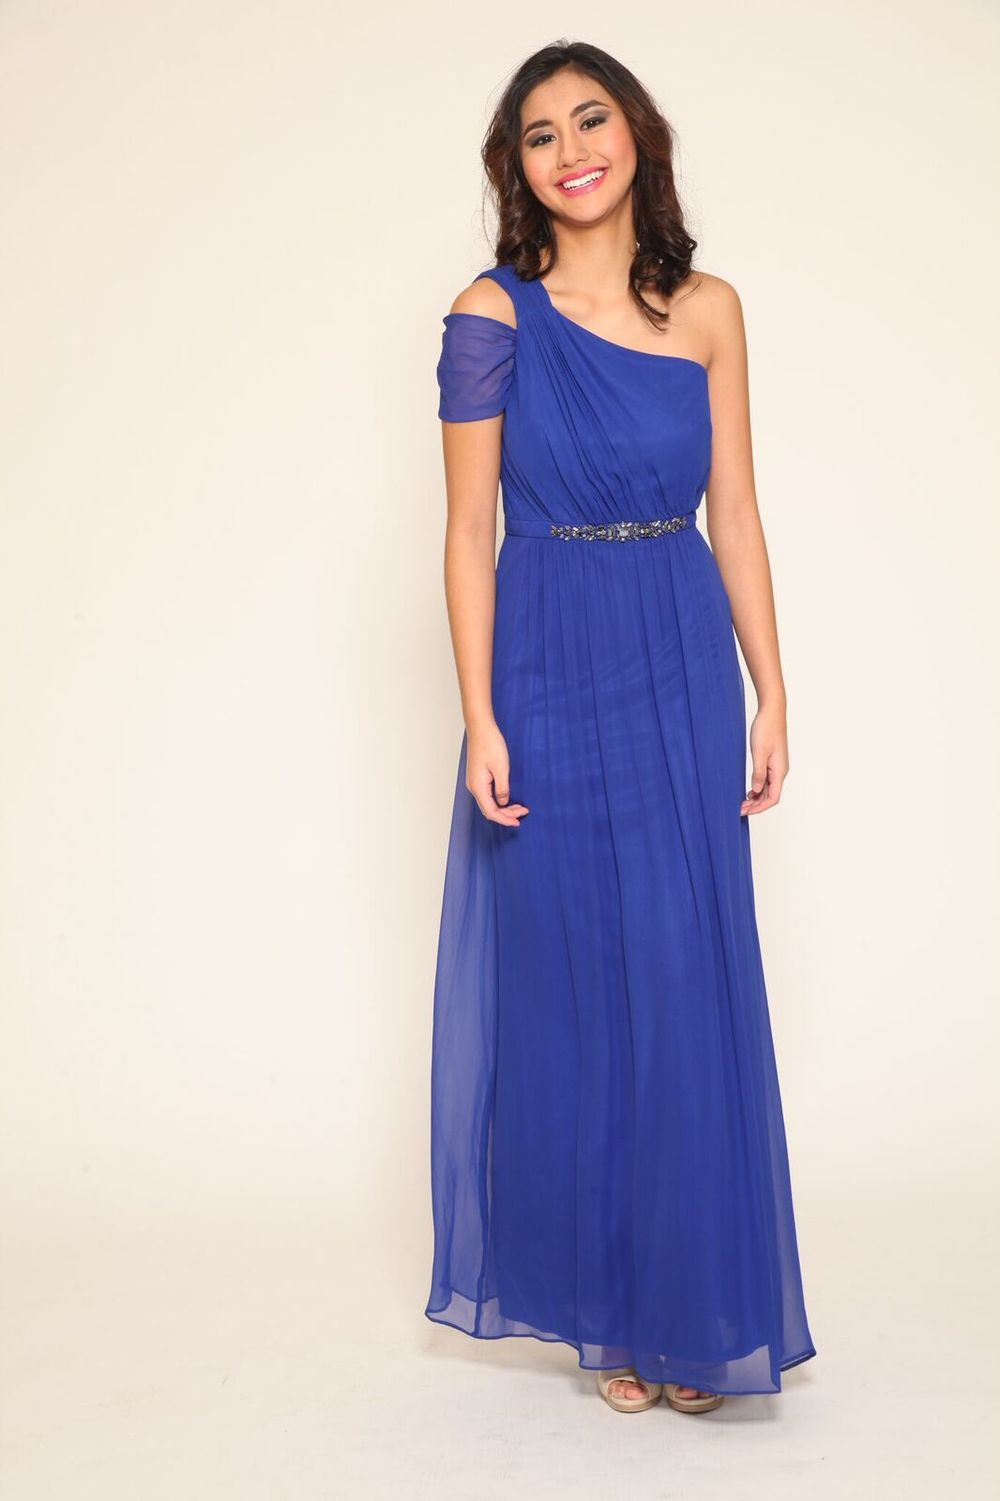 One Shoulder Chiffon Gown in French Blue $276.50